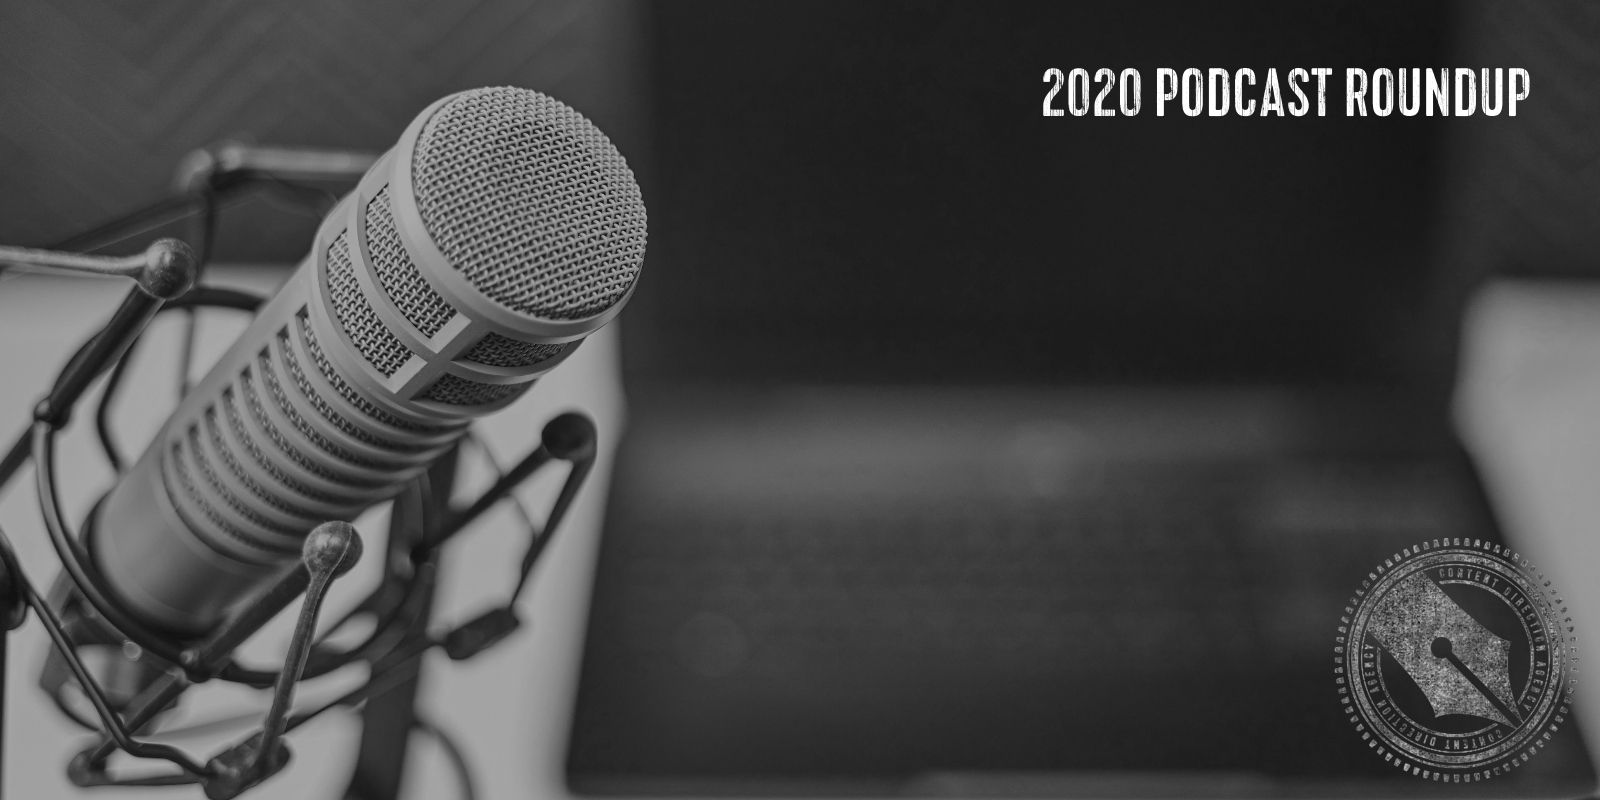 """[In a white distressed vintage font the title """"2020 Podcast Roundup"""" is overlaid on a black and white photo of an antique microphone.]"""